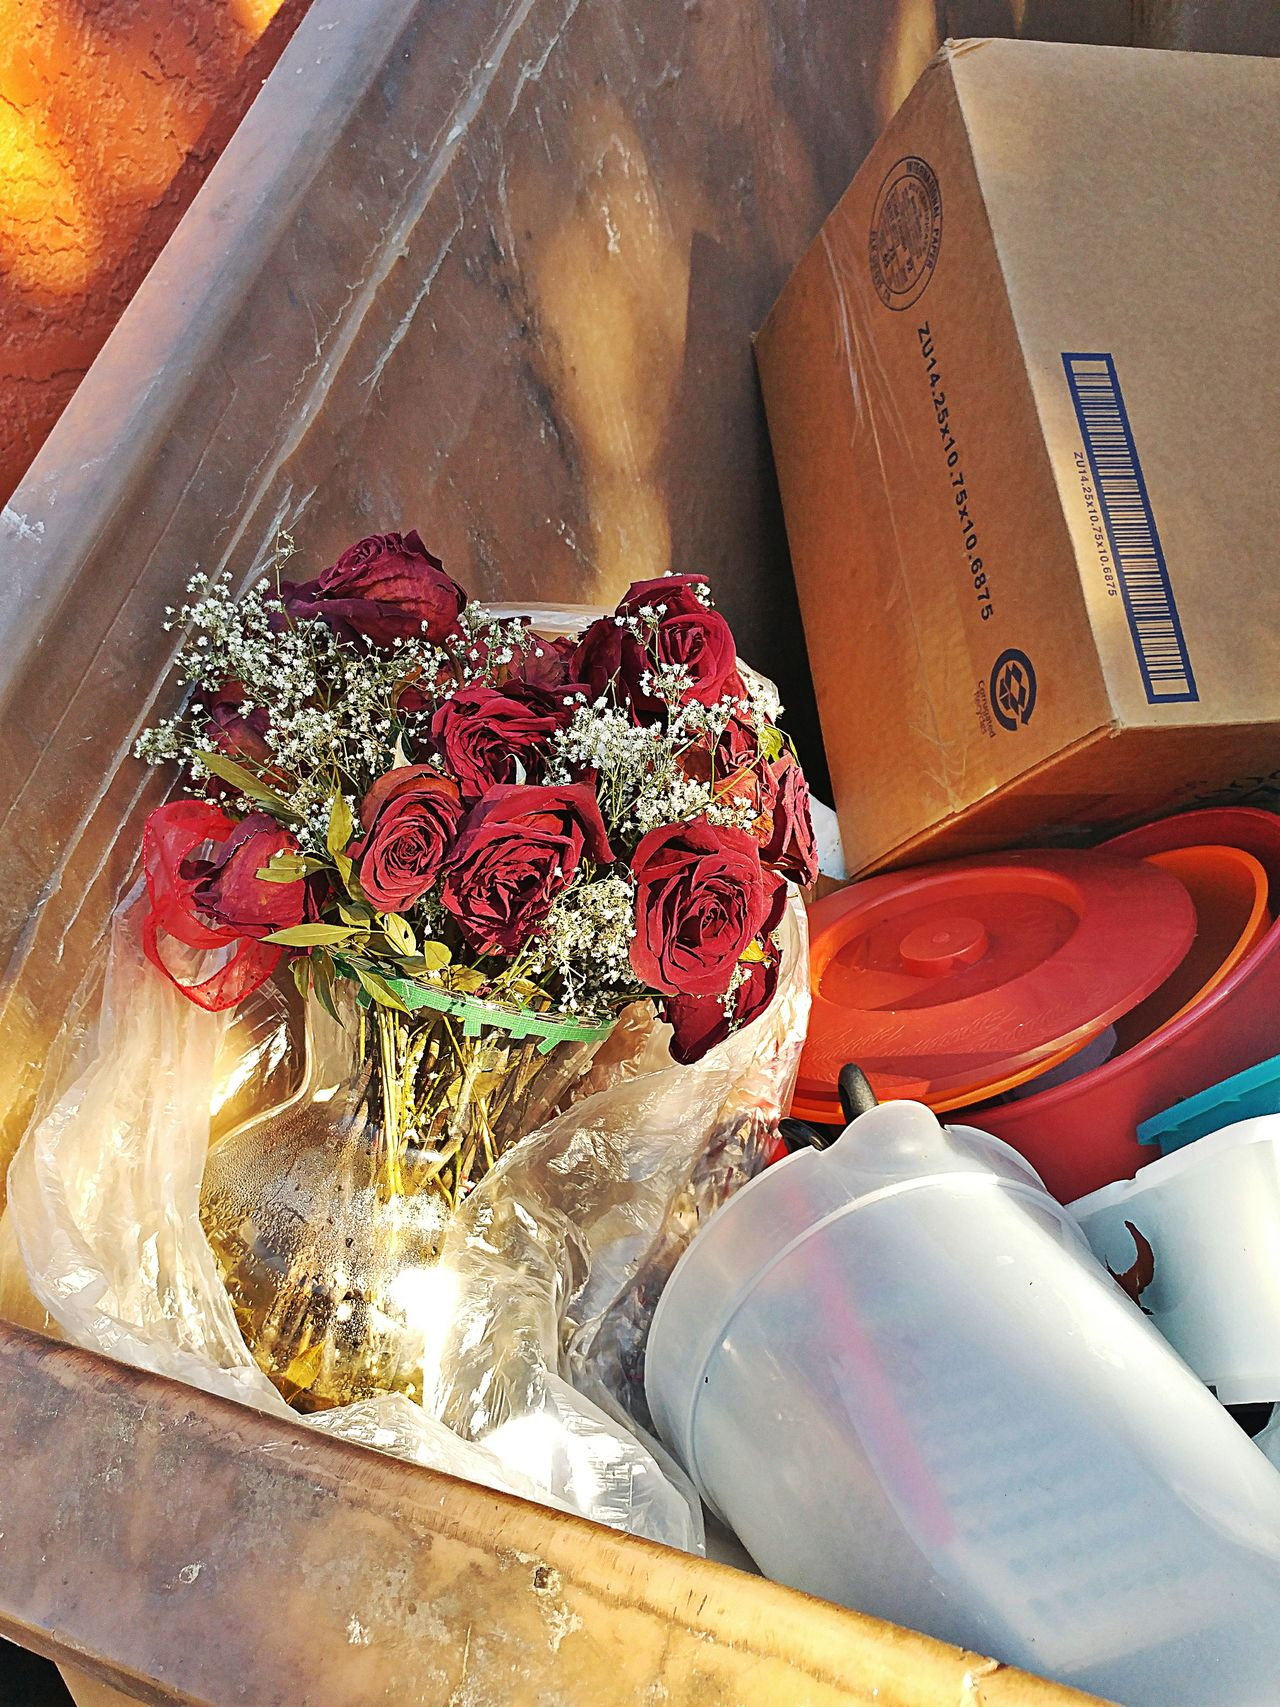 Thrown away roses Indoors  Close-up Table No People Food Day Roses Flowers  Roses Are Red Roses_collection Roses, Flowers, Nature, Garden, Bouquet, Love, Roses🌹 Tempe Az